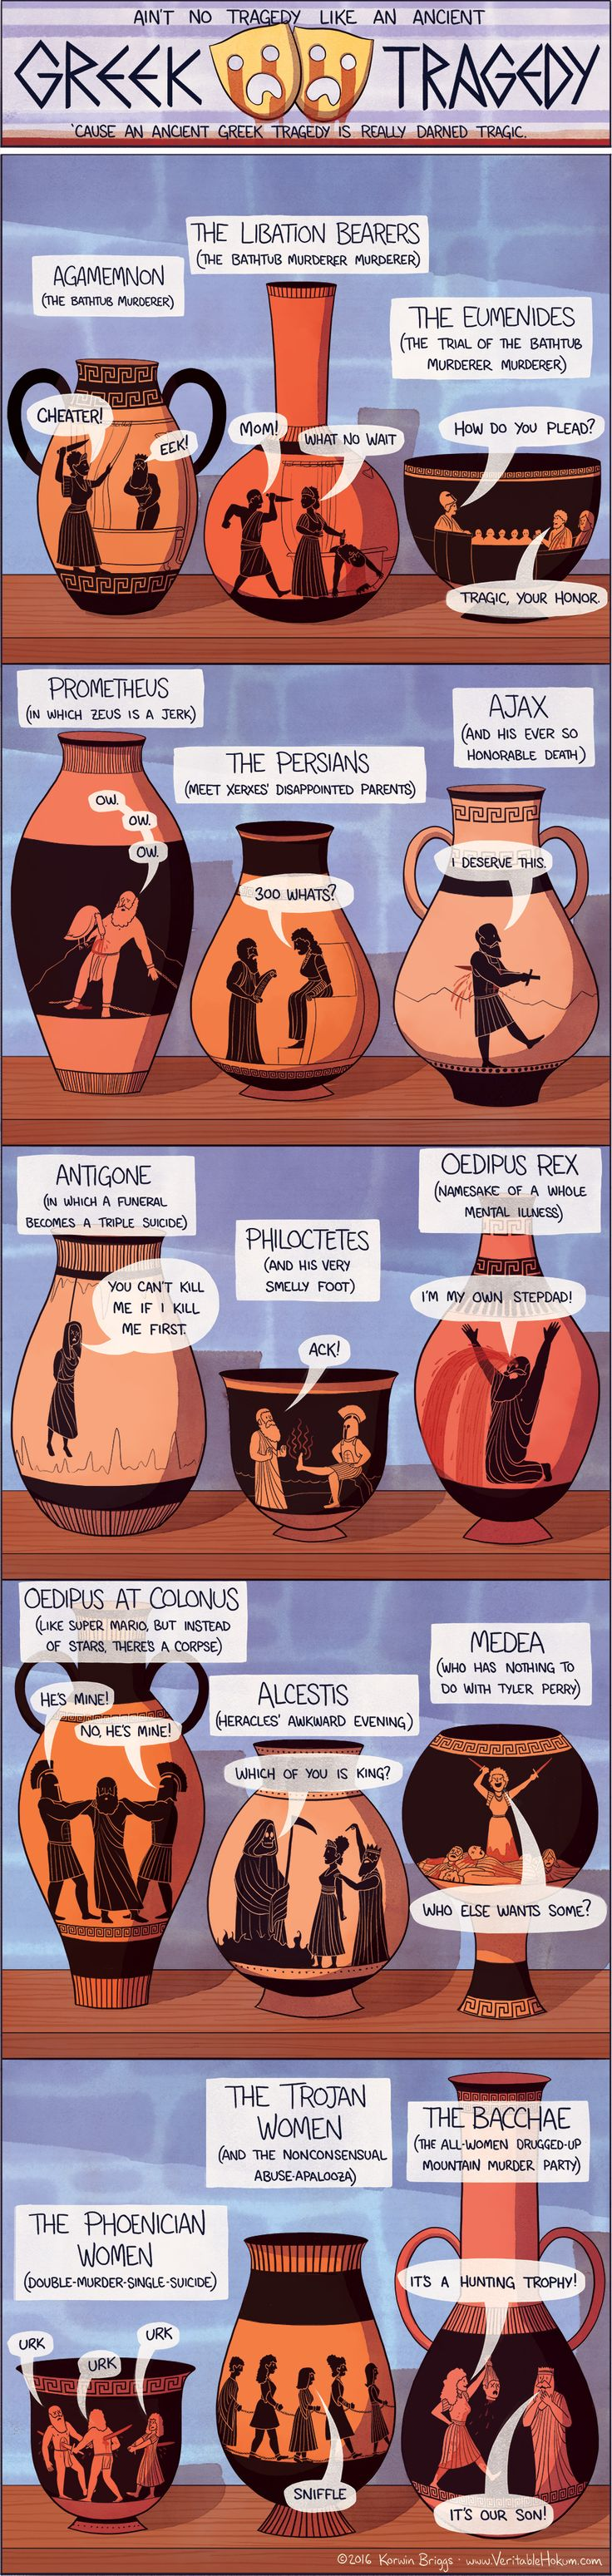 The Bacchae one is especially apt. Also, for Agamemnon: She didn't care about the cheating so much. She cared that he SENT THEIR DAUGHTER TO BE SLAUGHTERED so they could have good wind for the ships. Bit of a difference there. Still, this infographic is awesome. // Ain't No Tragedy Like An Ancient Greek Tragedy